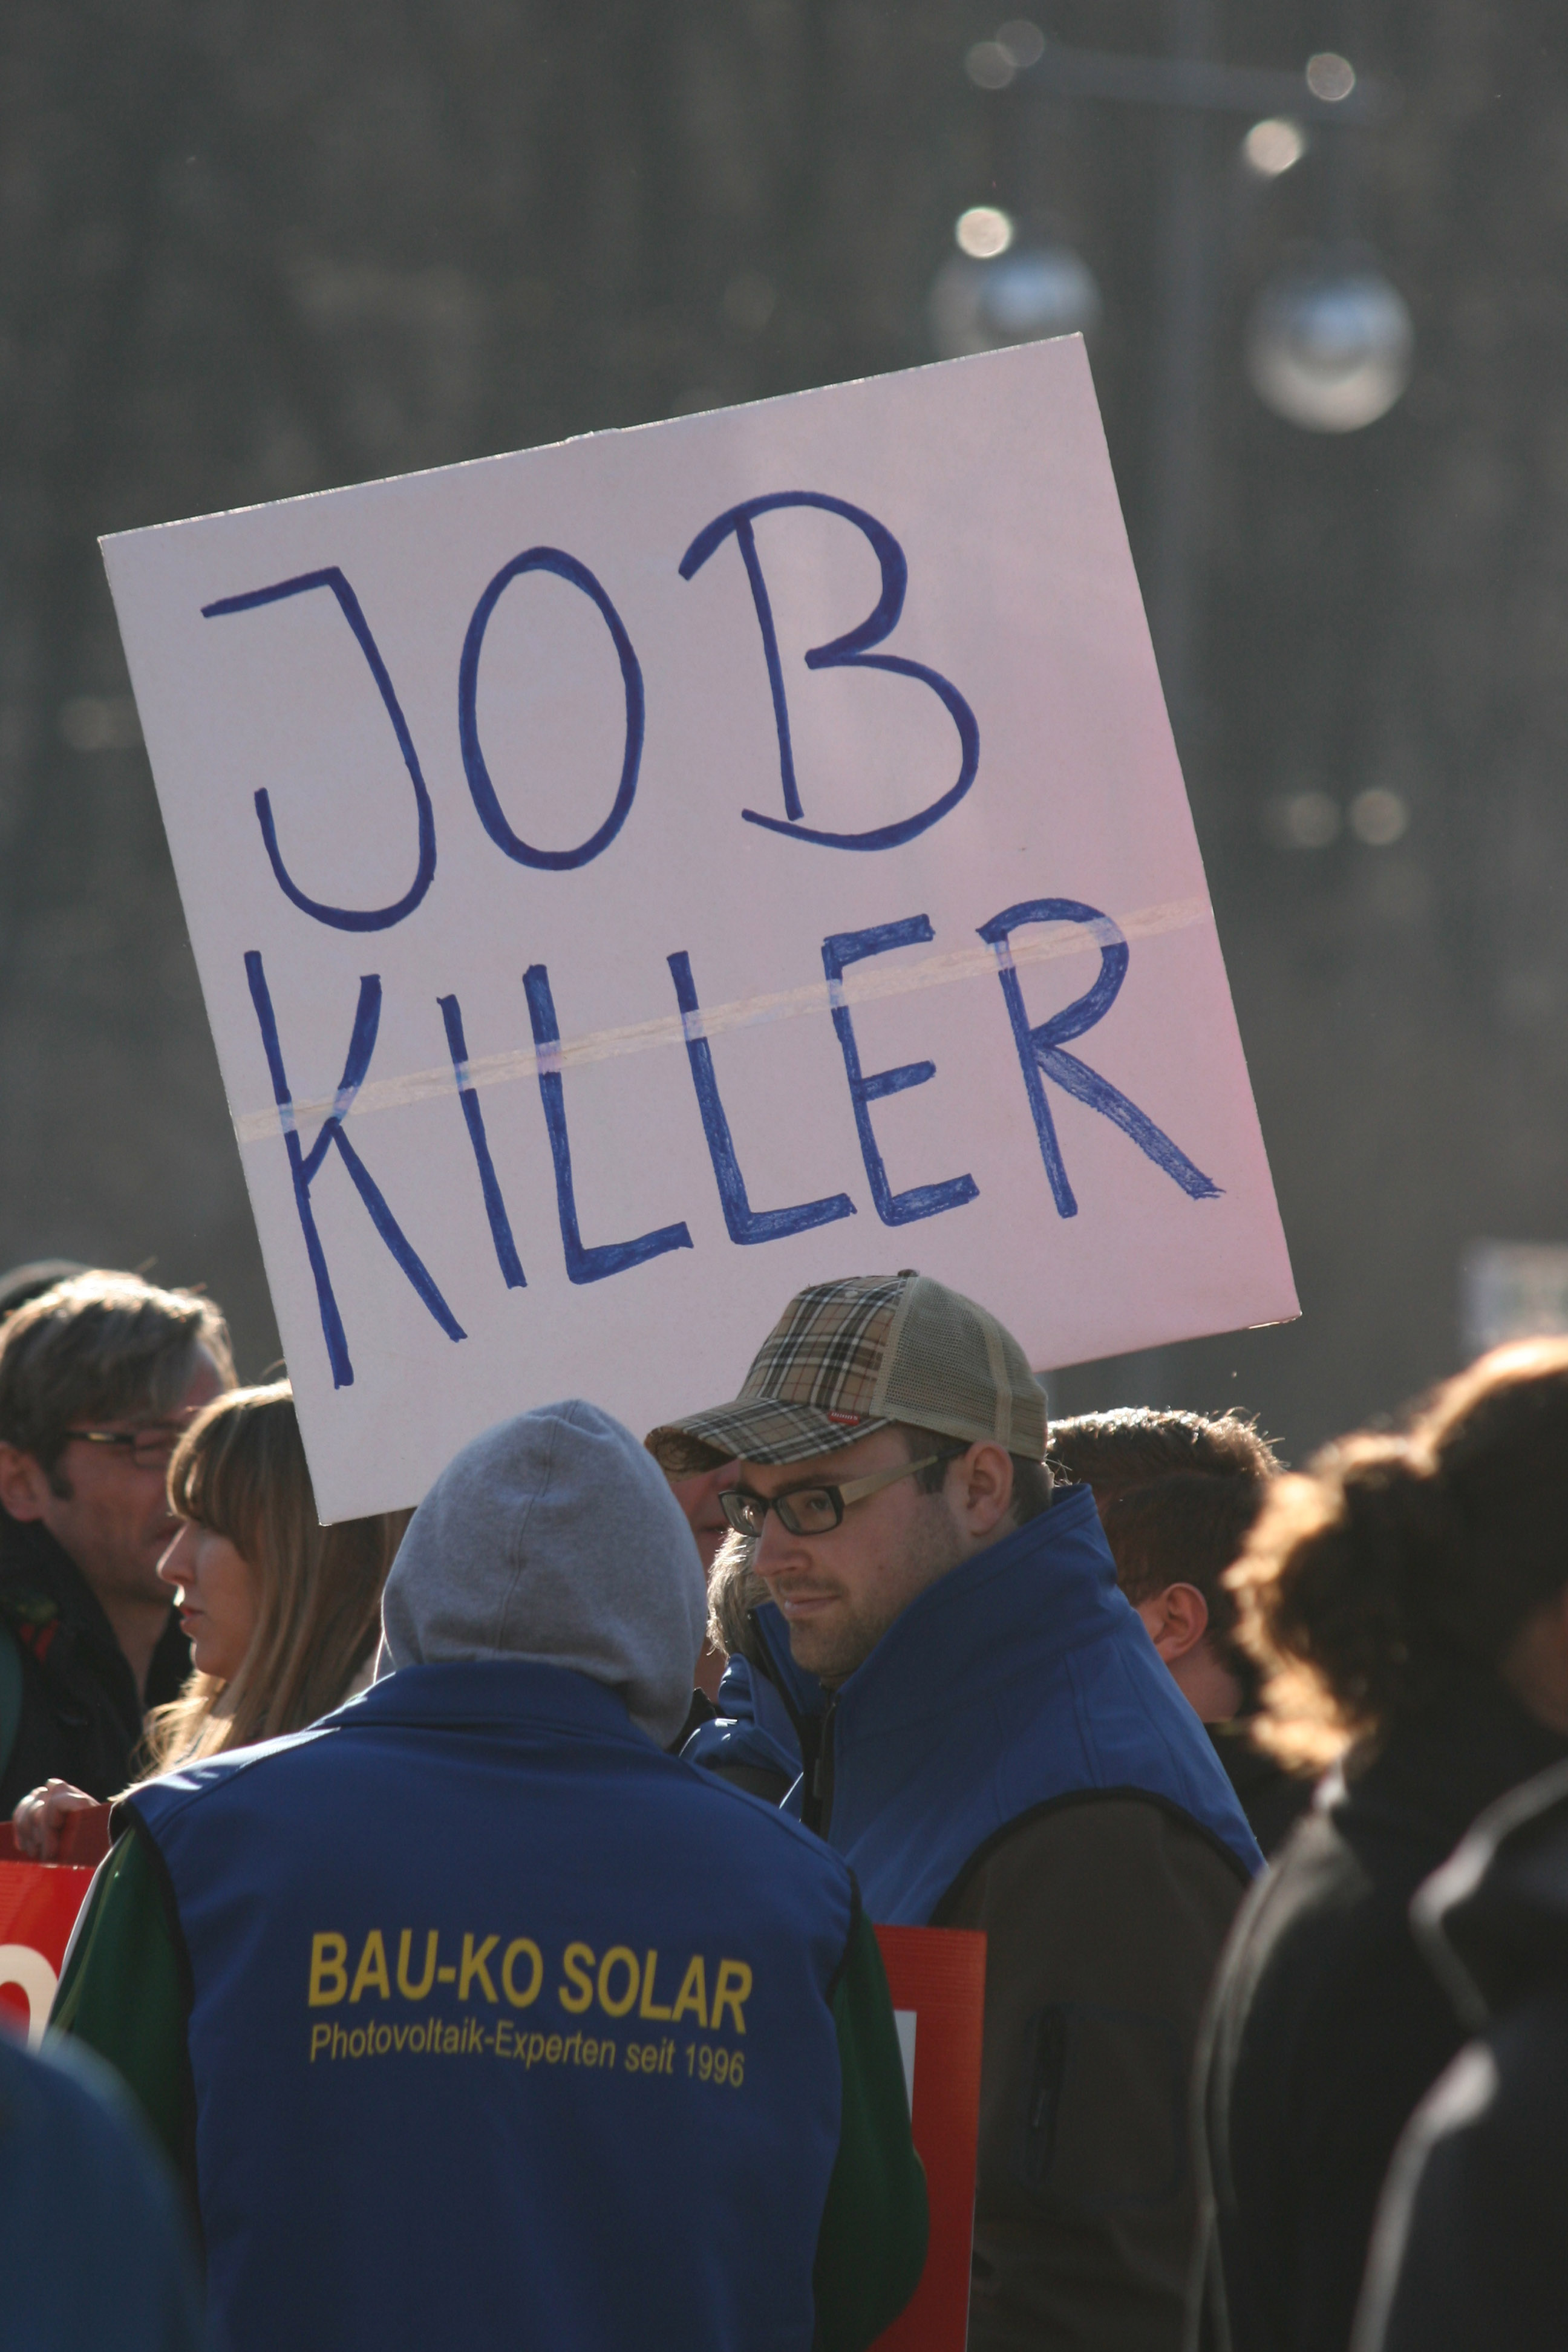 Job Killer - Protesters near the Brandenburg Gate (Brandenburger Tor) in Berlin during a demonstration over cuts in Solar Power subsidies